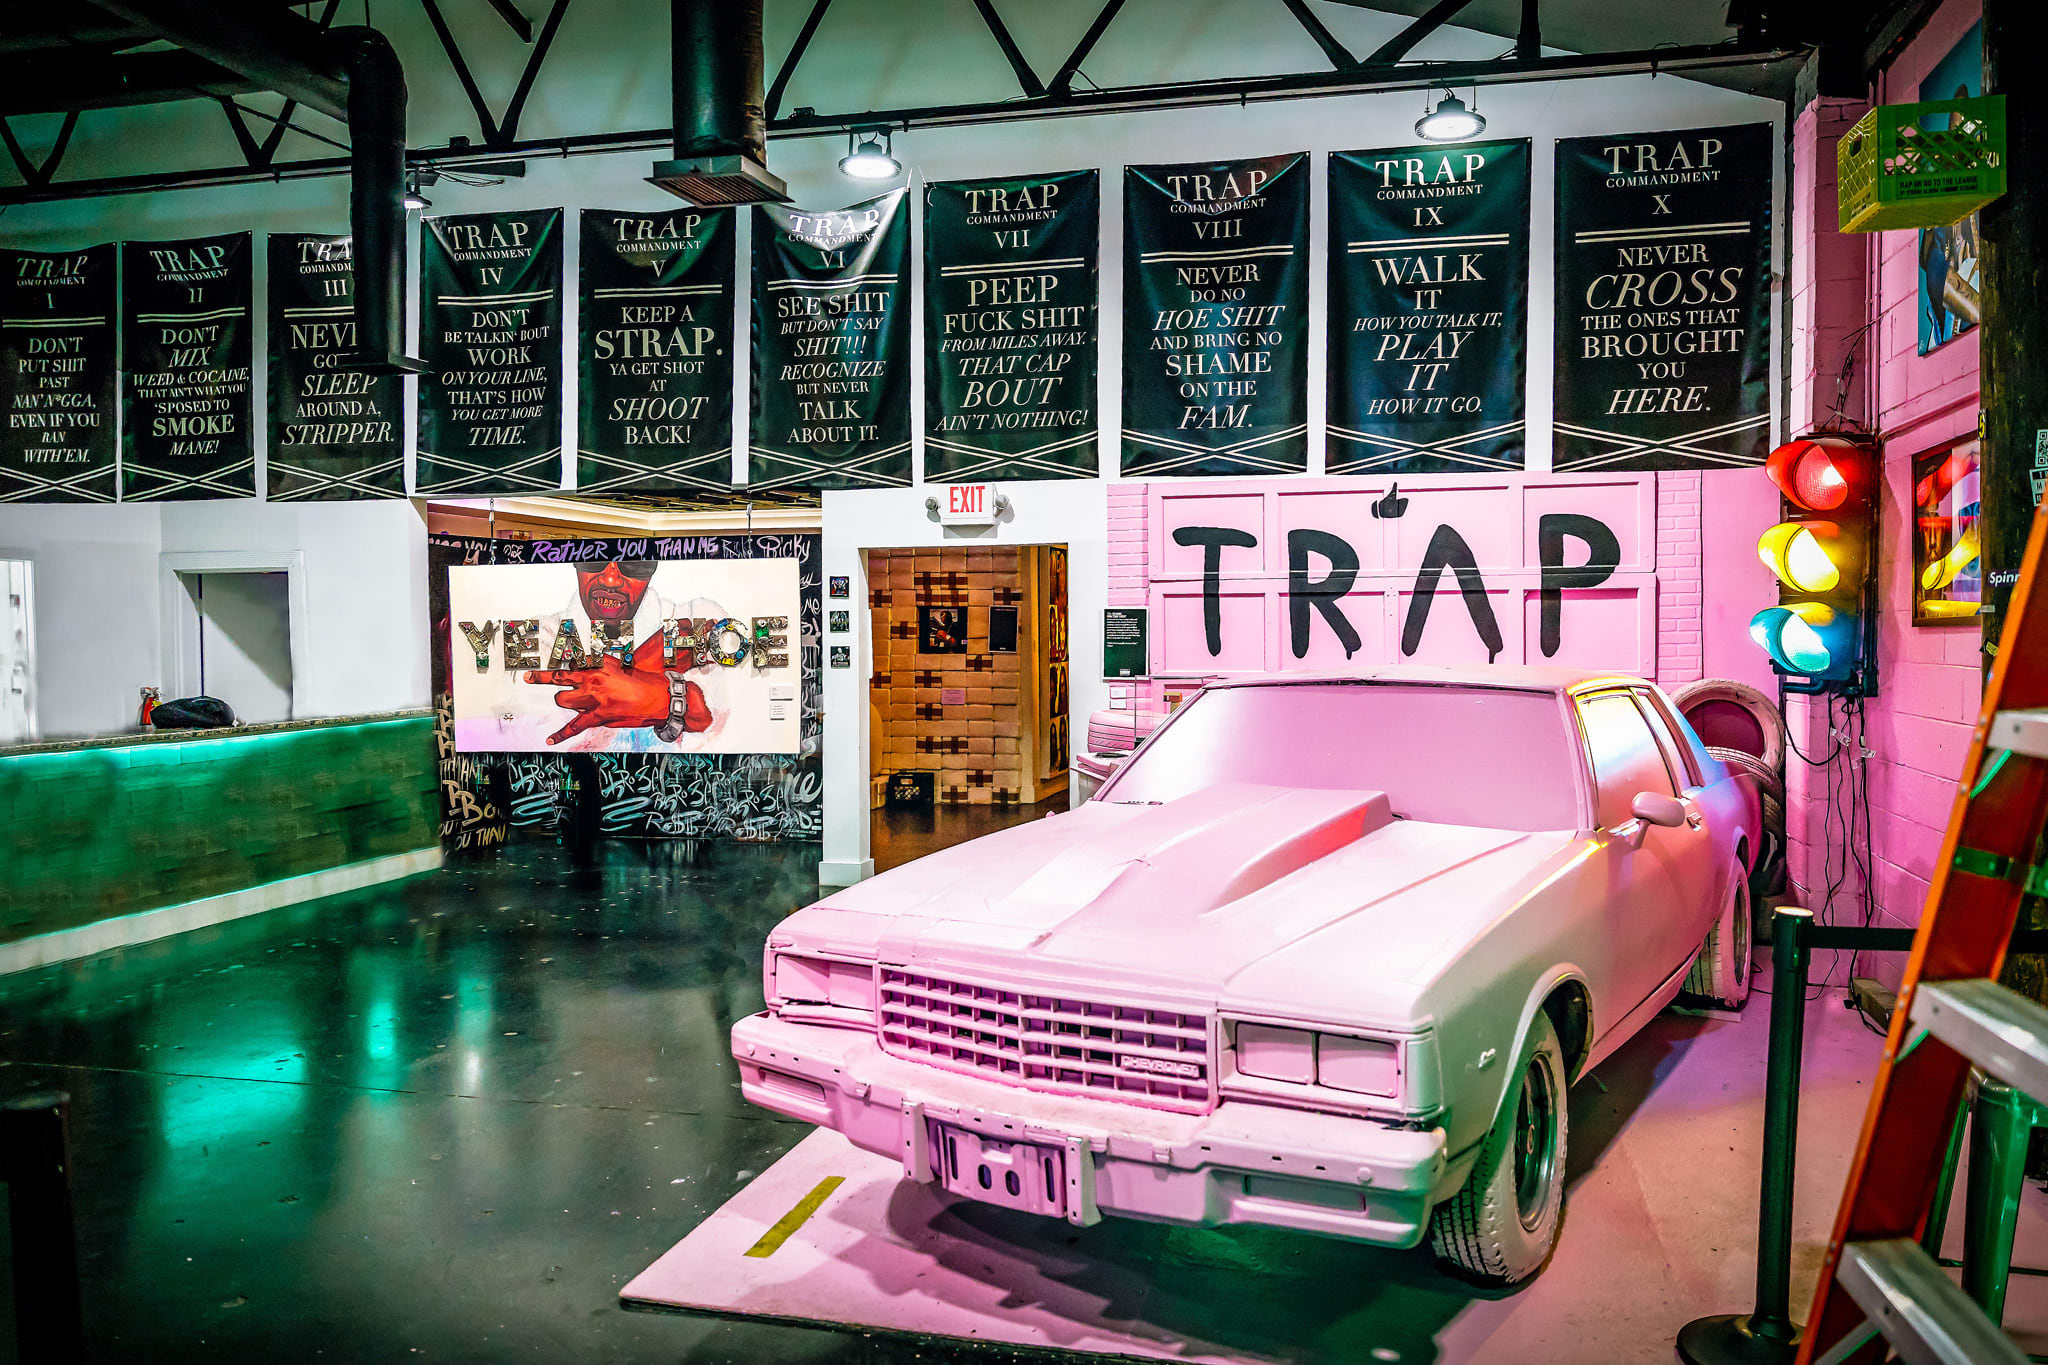 The Trap Music Museum has quickly become on the top places to visit in Atlanta